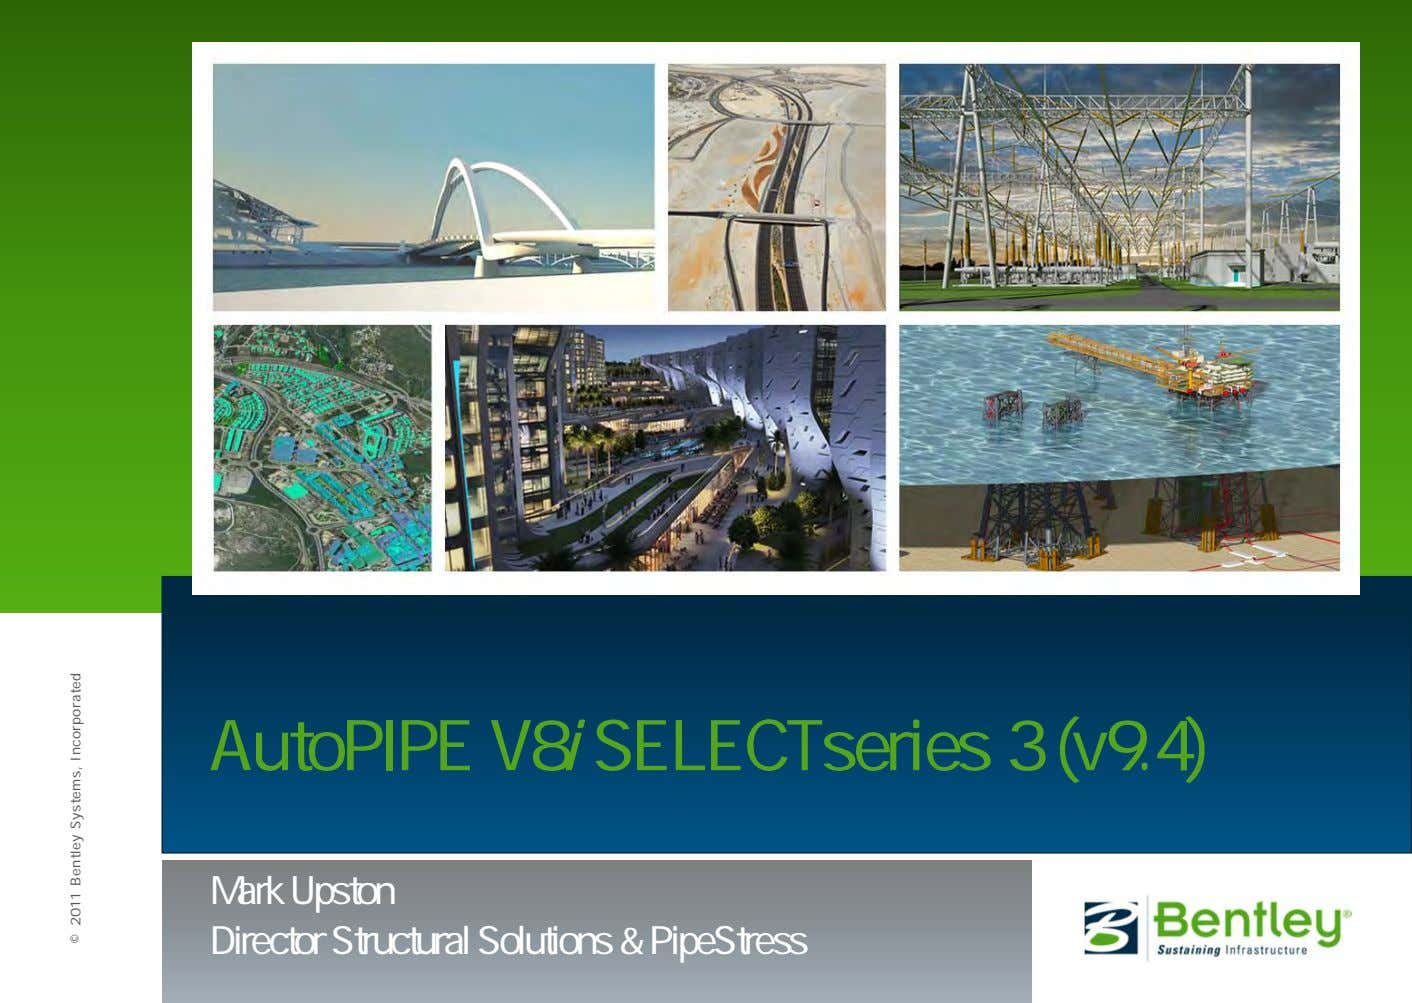 AutoPIPE V8 i SELECTseries 3 (v9.4) Mark Upston Director Structural Solutions & PipeStress © 2011